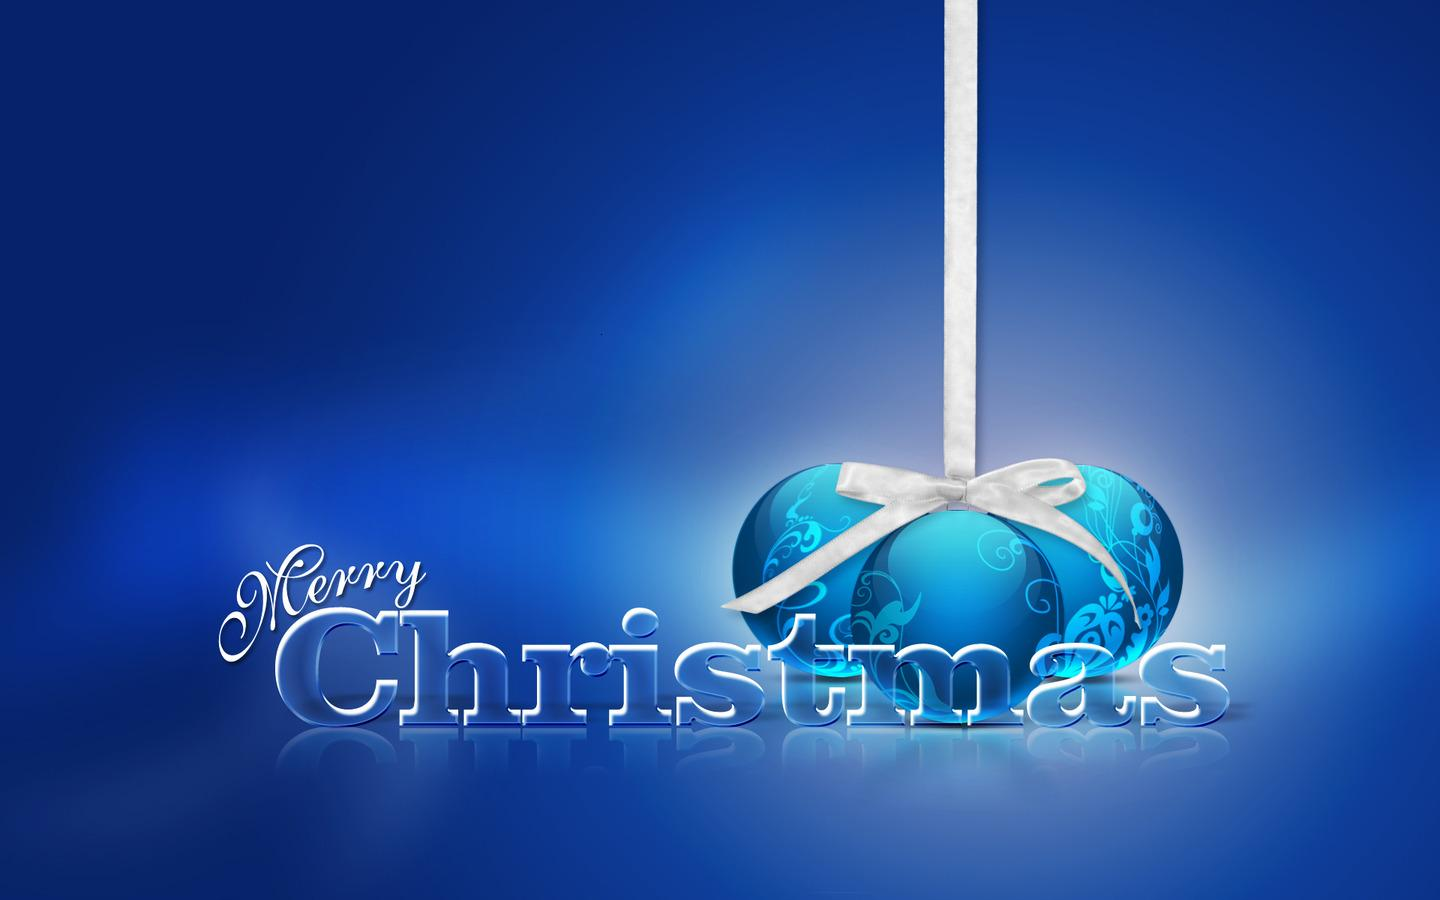 Christmas 3d Wallpapers Christmas 3d Wallpapers Download 1440x900